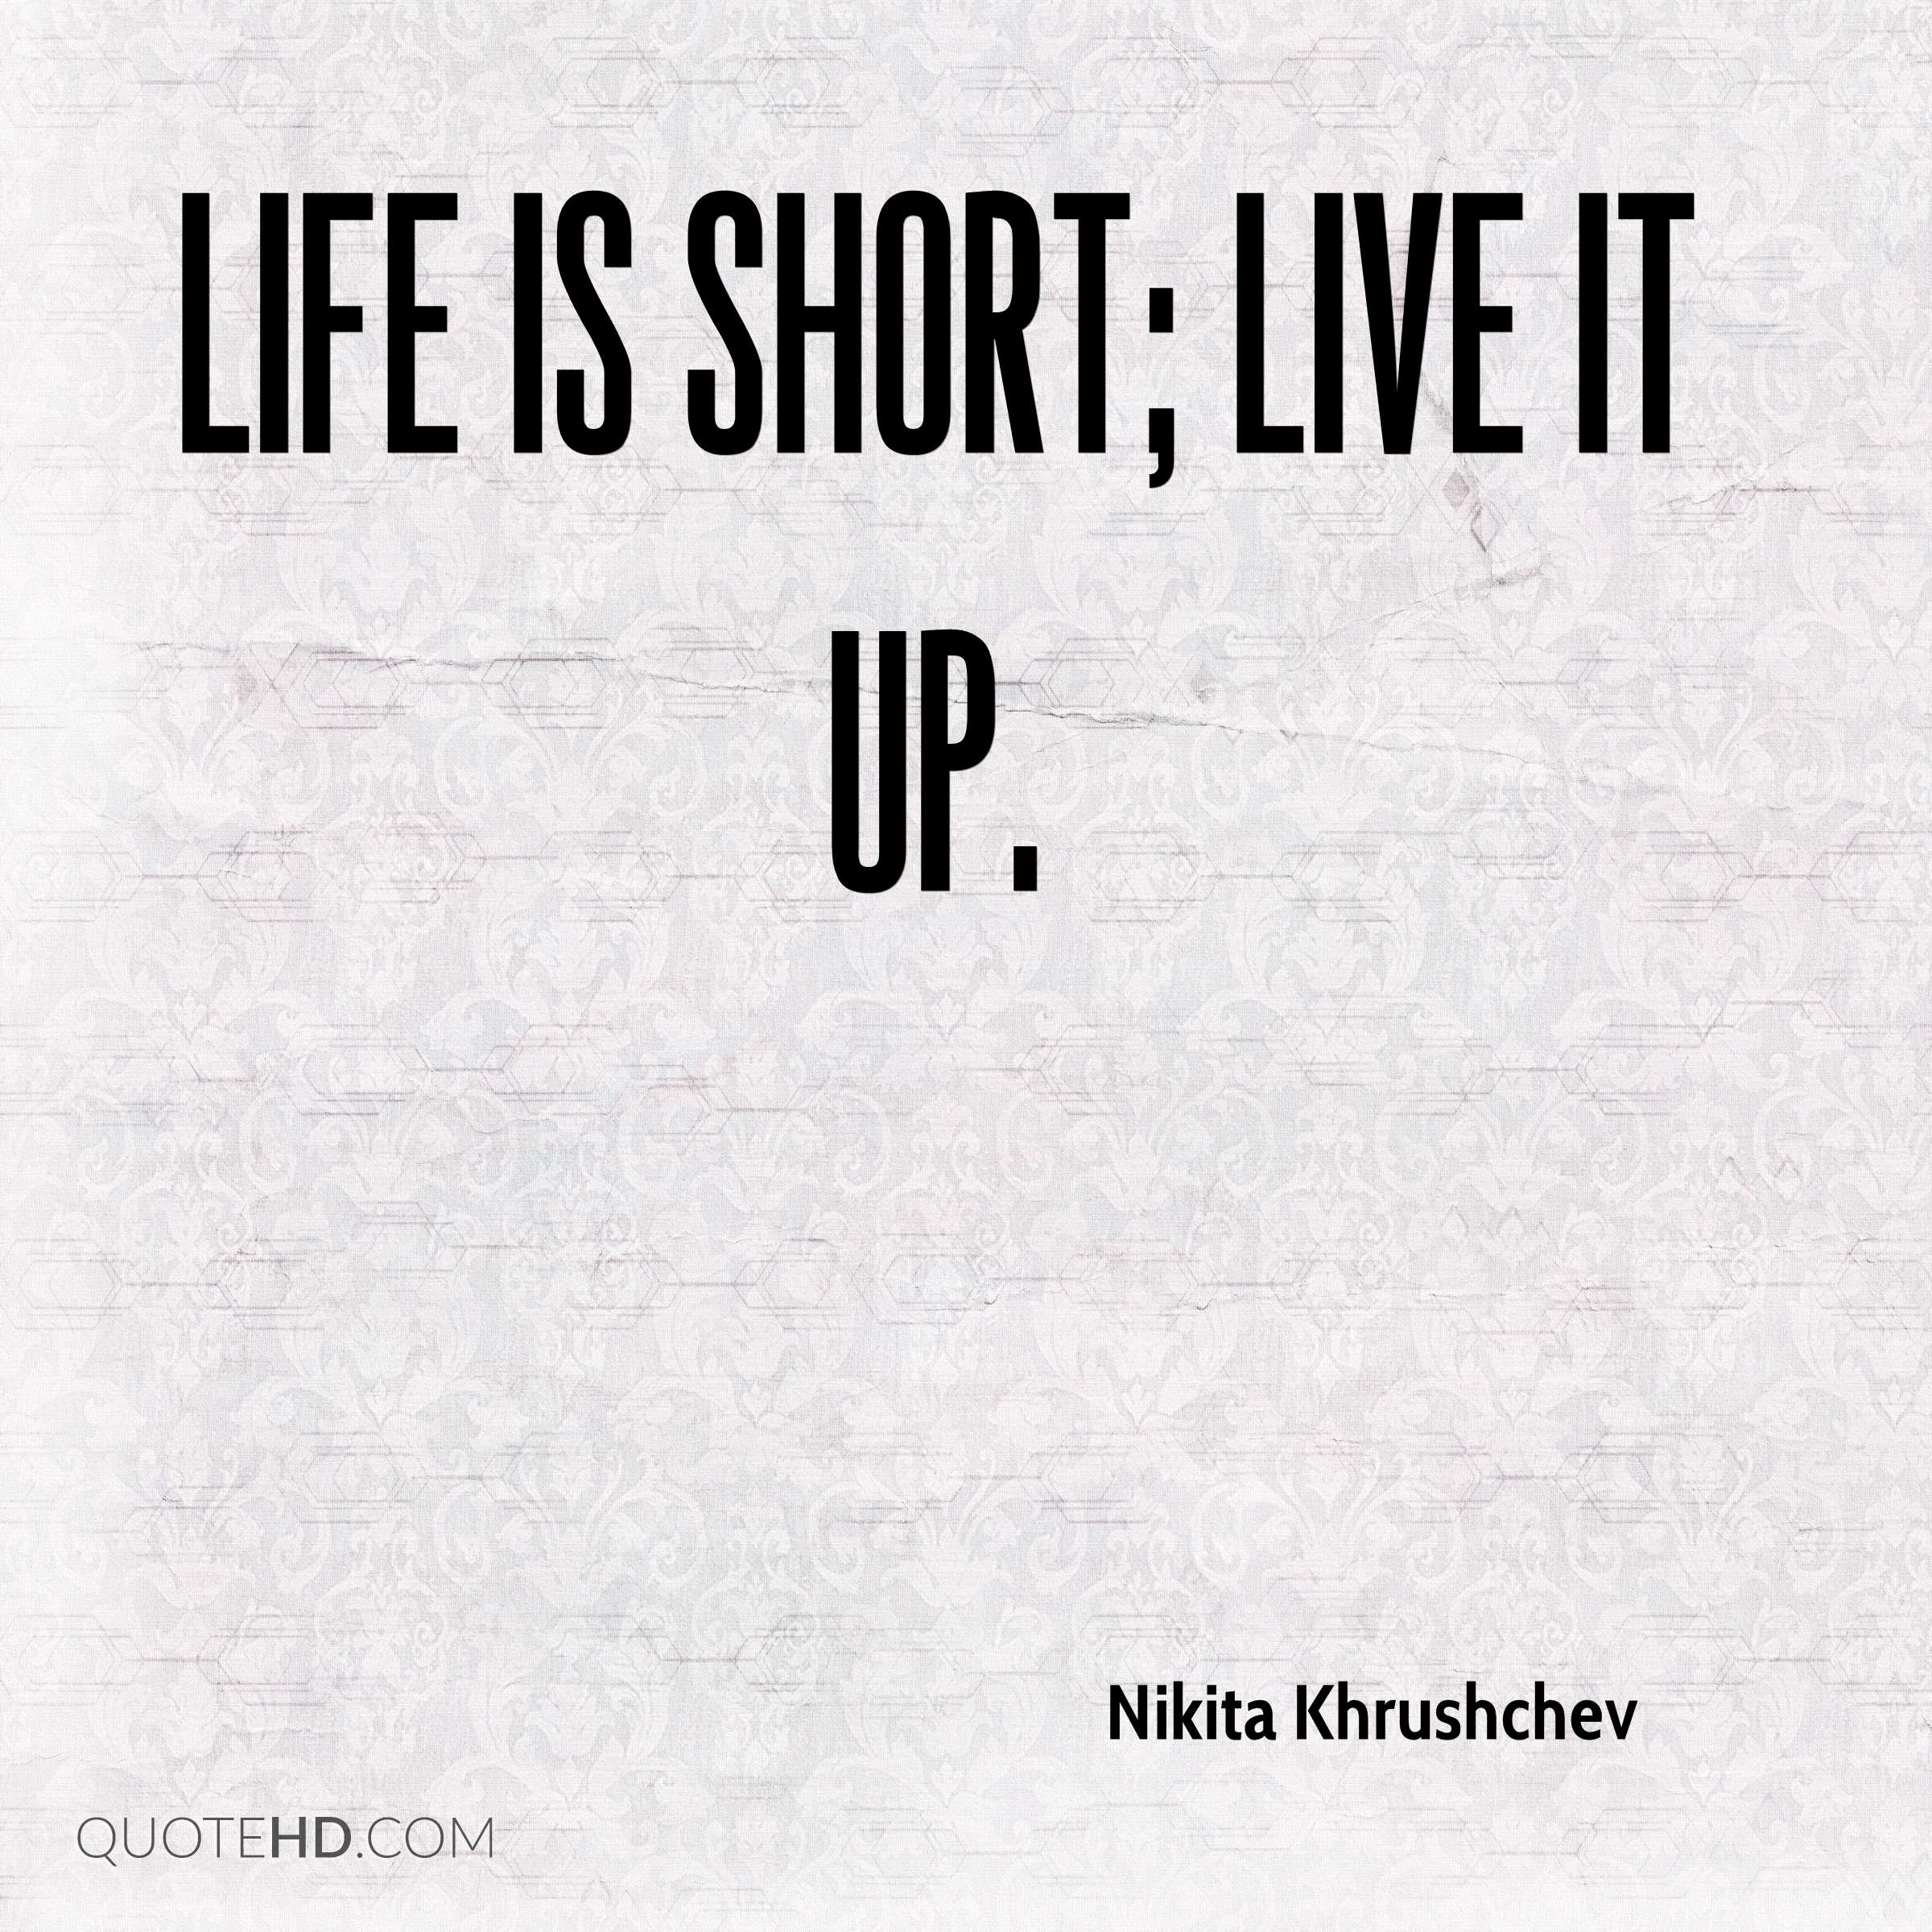 Shorts Quotes About Life Nikita Khrushchev Life Quotes  Quotehd